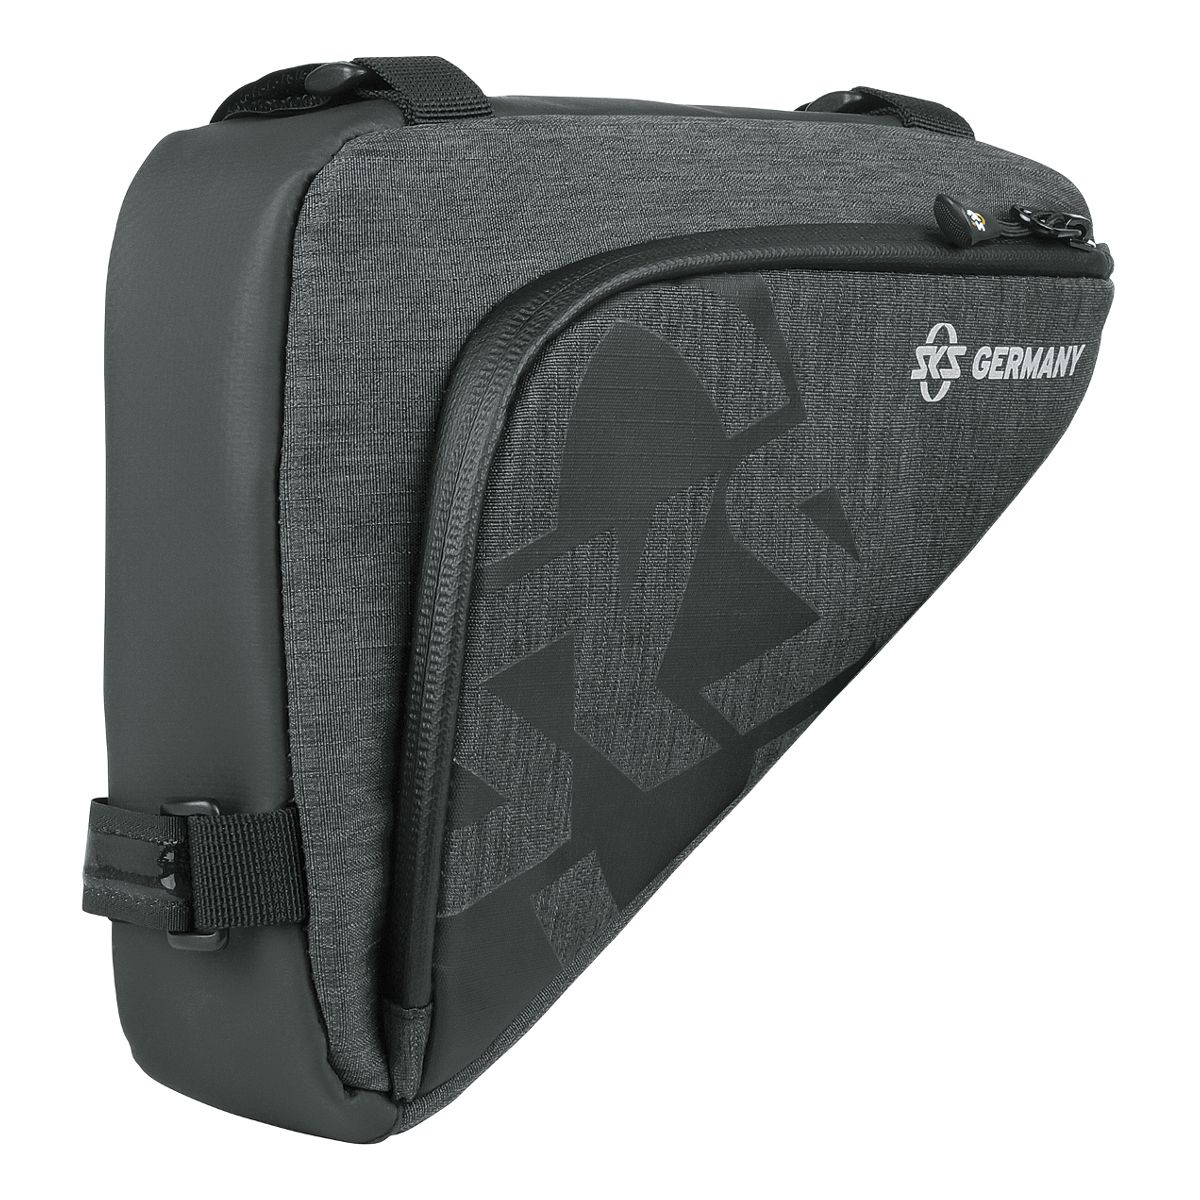 Traveller Edge frame bag